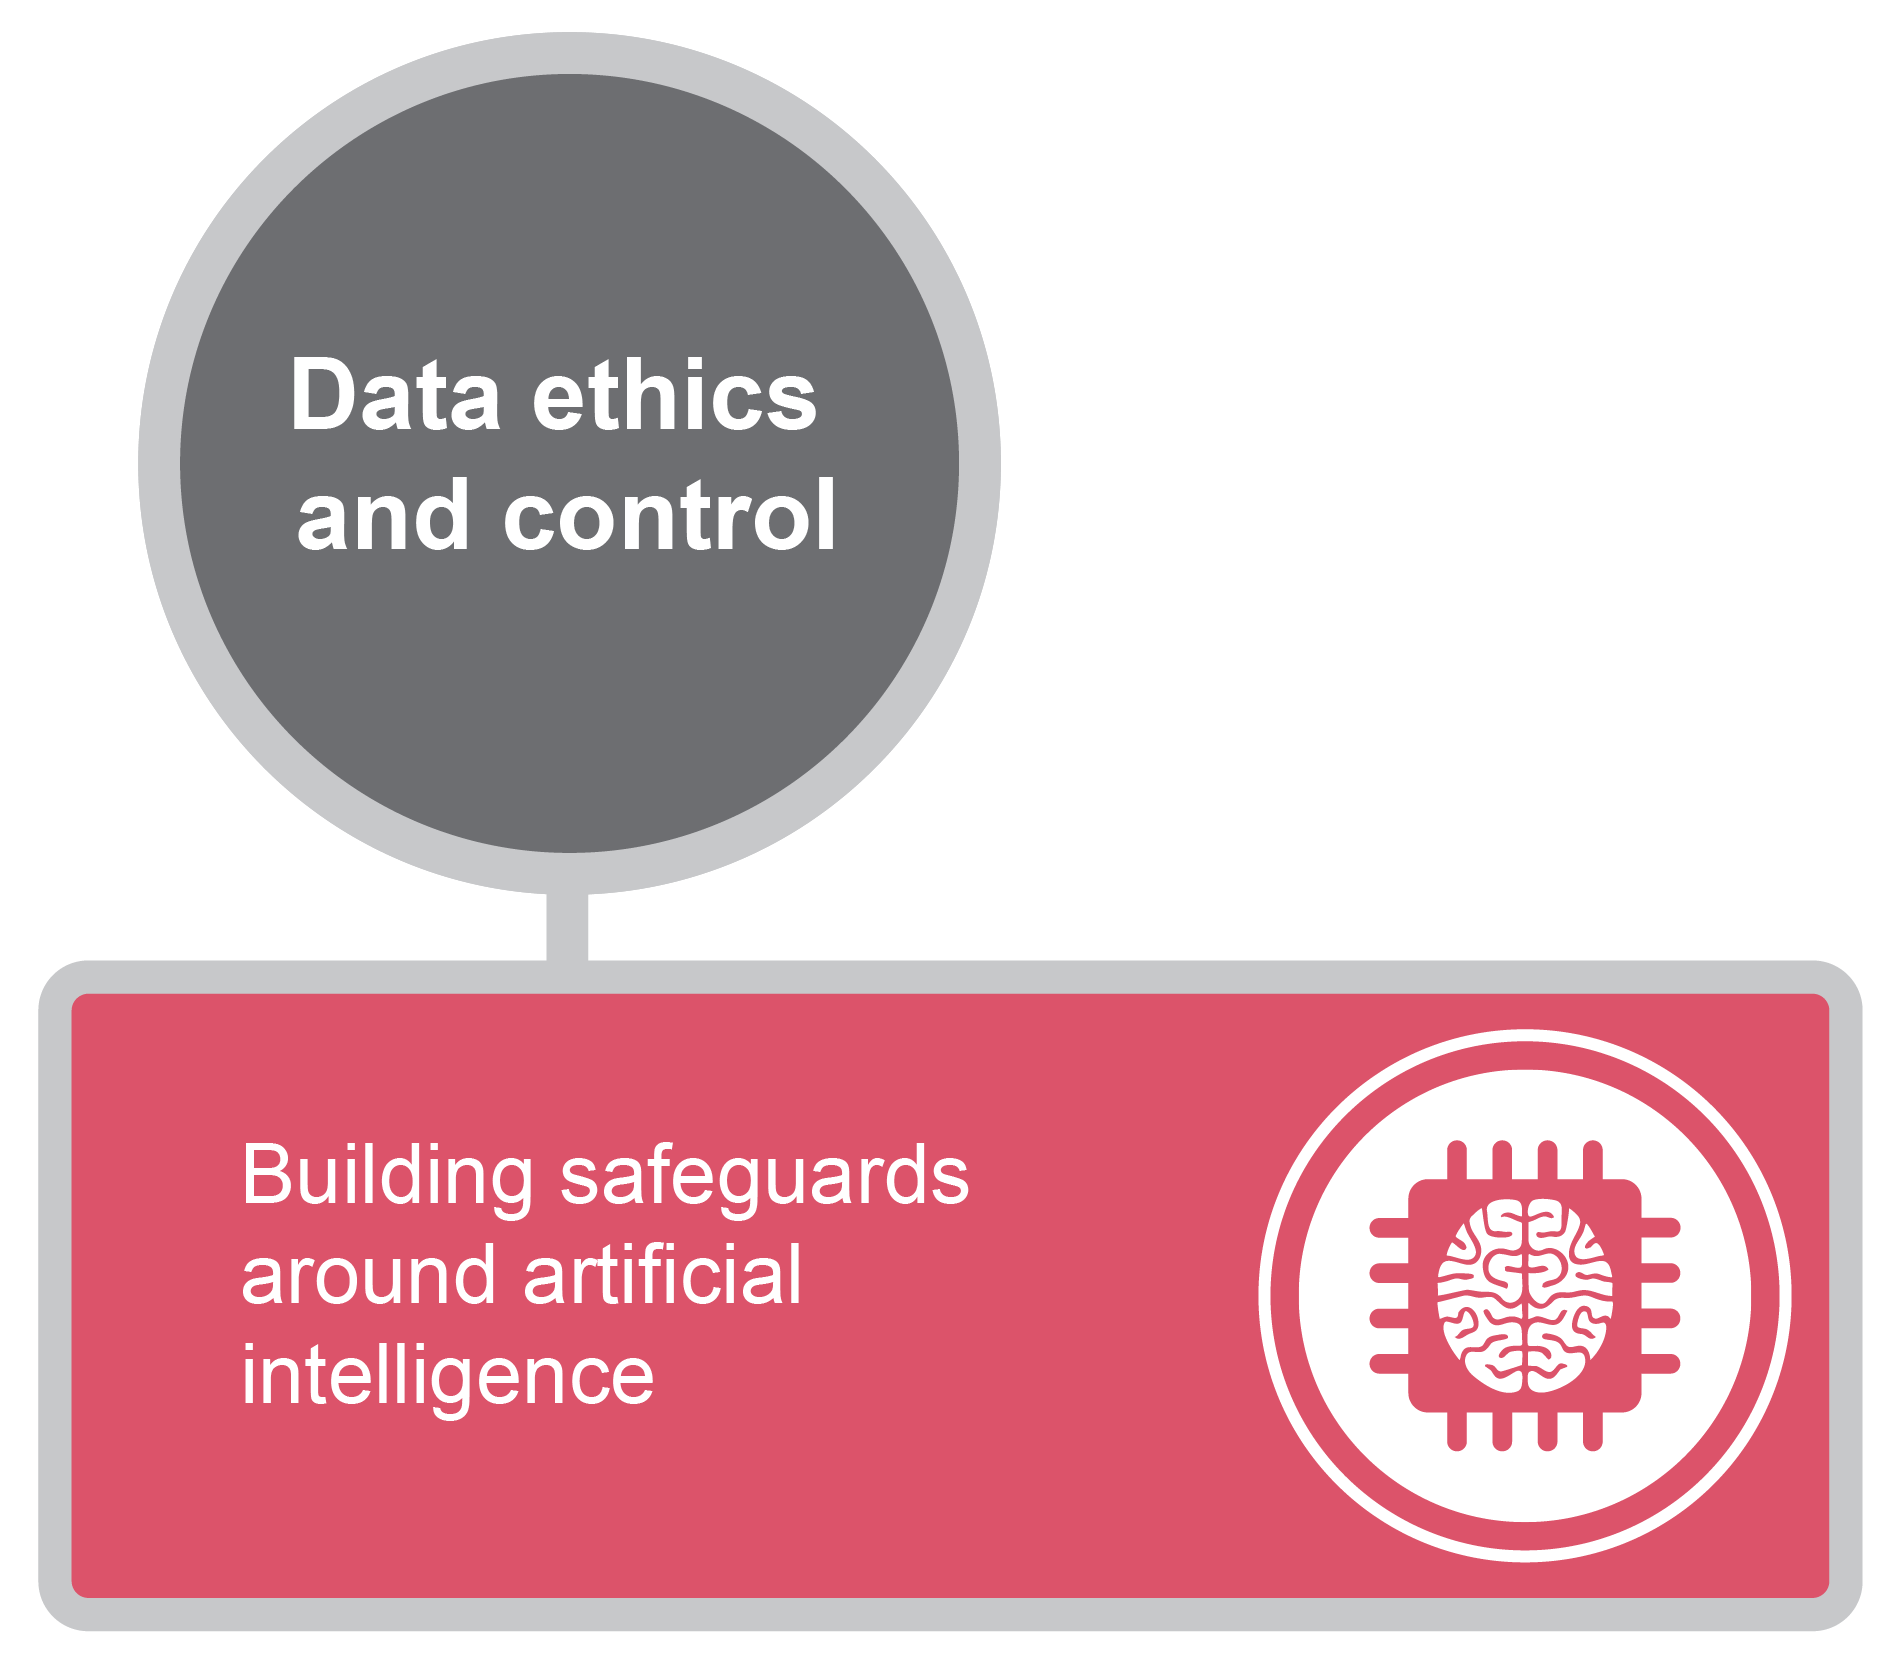 Building safeguards aruond artificial intelligence graphic